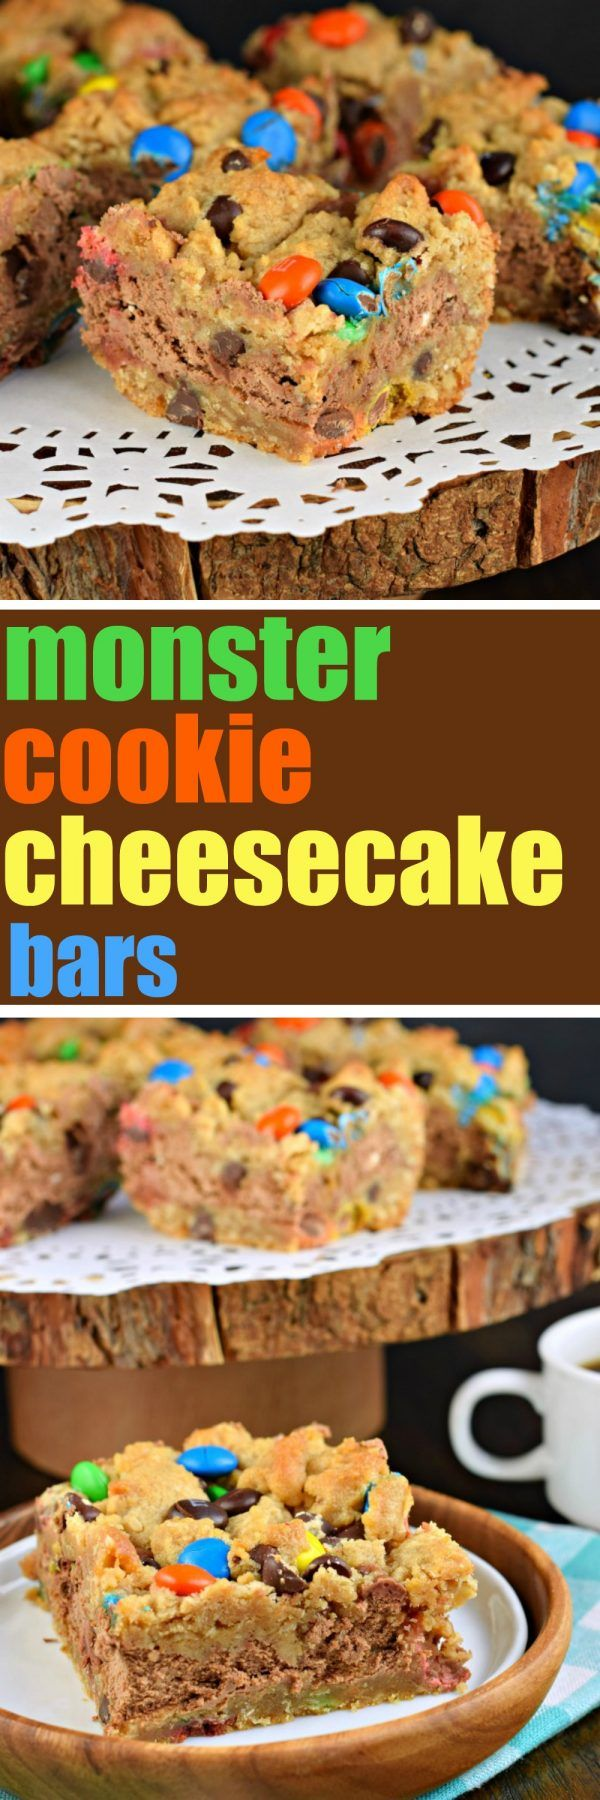 Monster Cookie Cheesecake Bars - Shugary Sweets